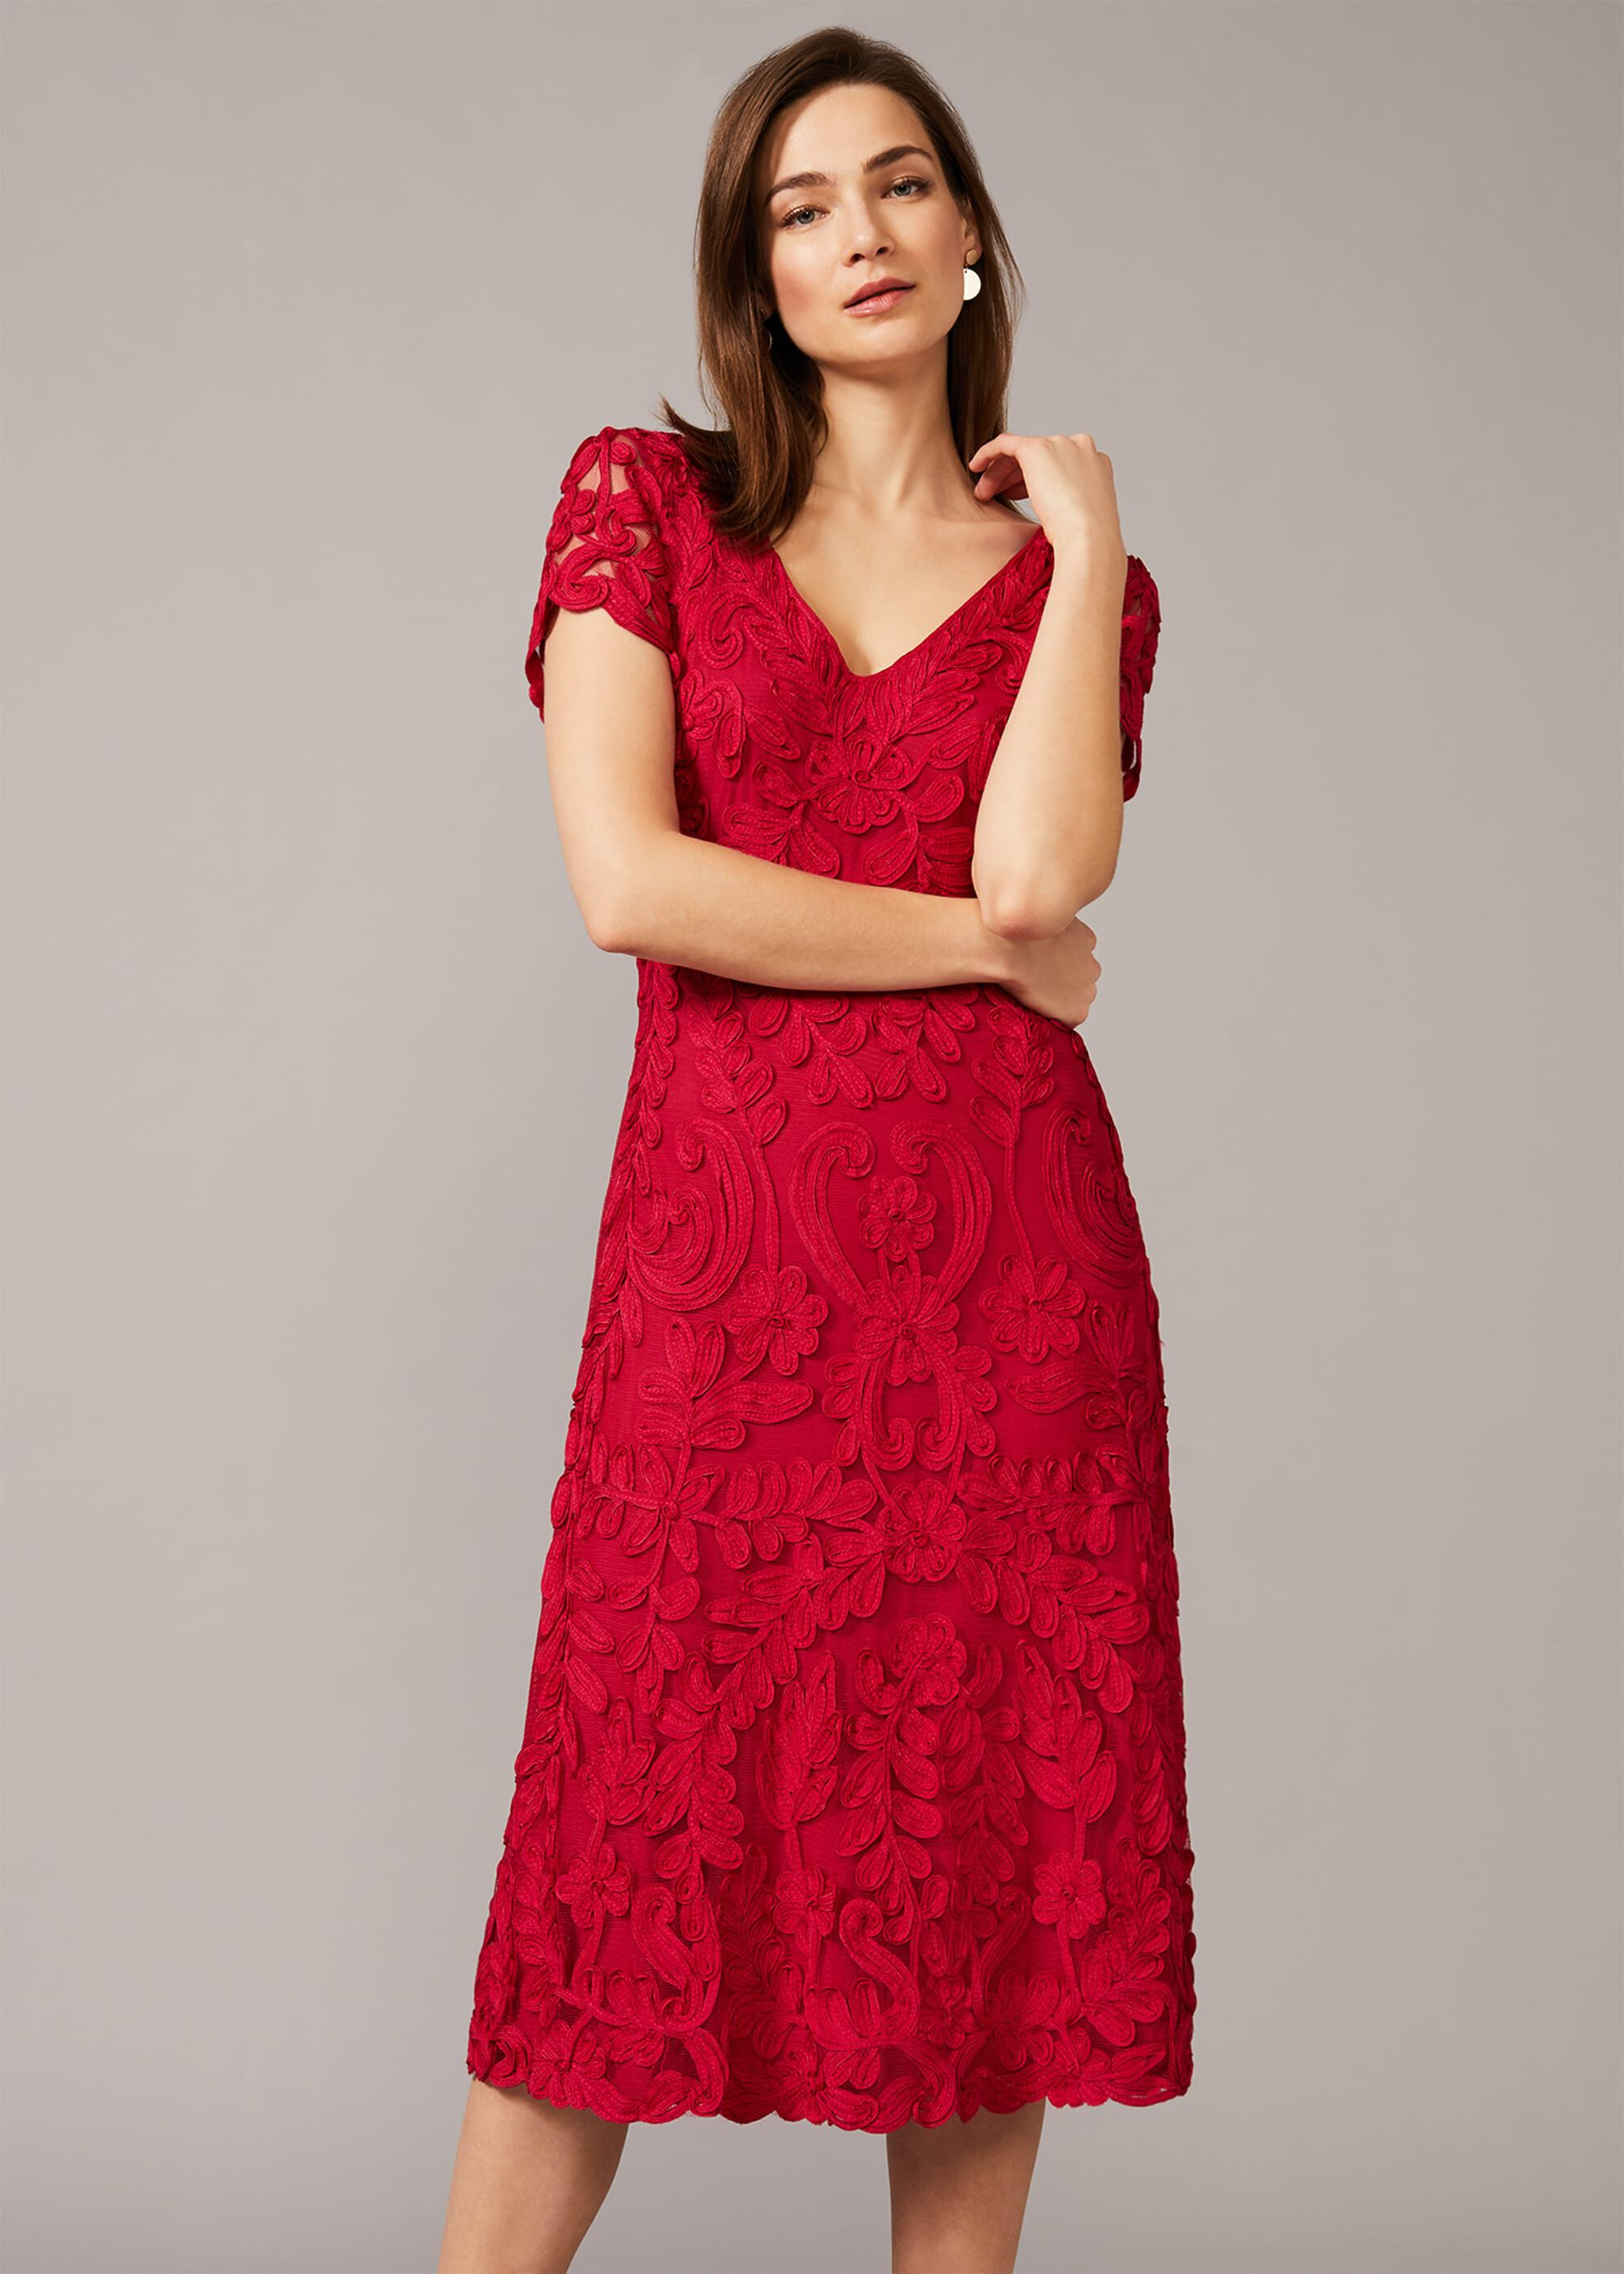 Phase Eight Blossom Tapework Lace Dress, Pink, Fit & Flare